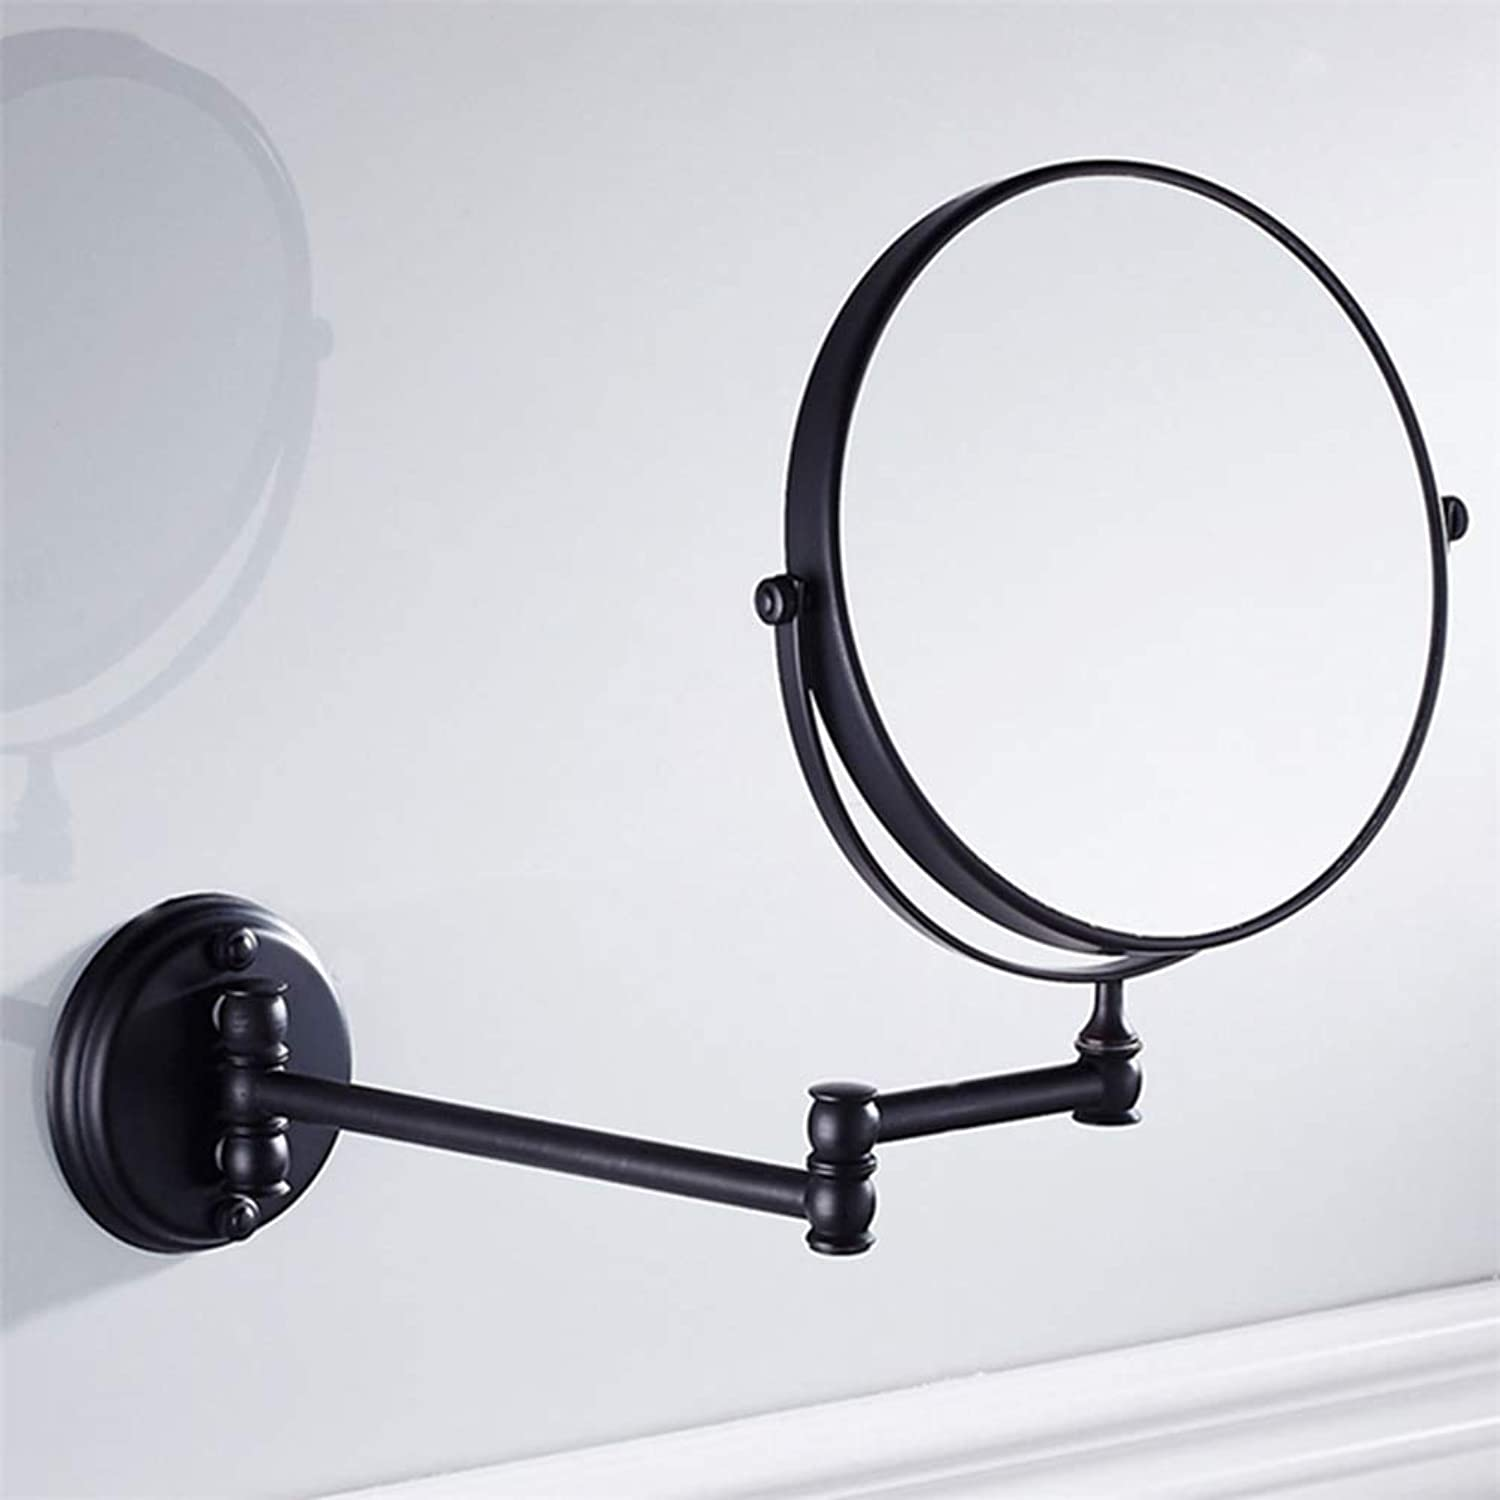 LUDSUY 8-Inch Two-Sided Swivel Wall Mount Makeup Mirror with 3X Magnification Oil Rubbed Bronze Solid Brass Bathroom Accessories